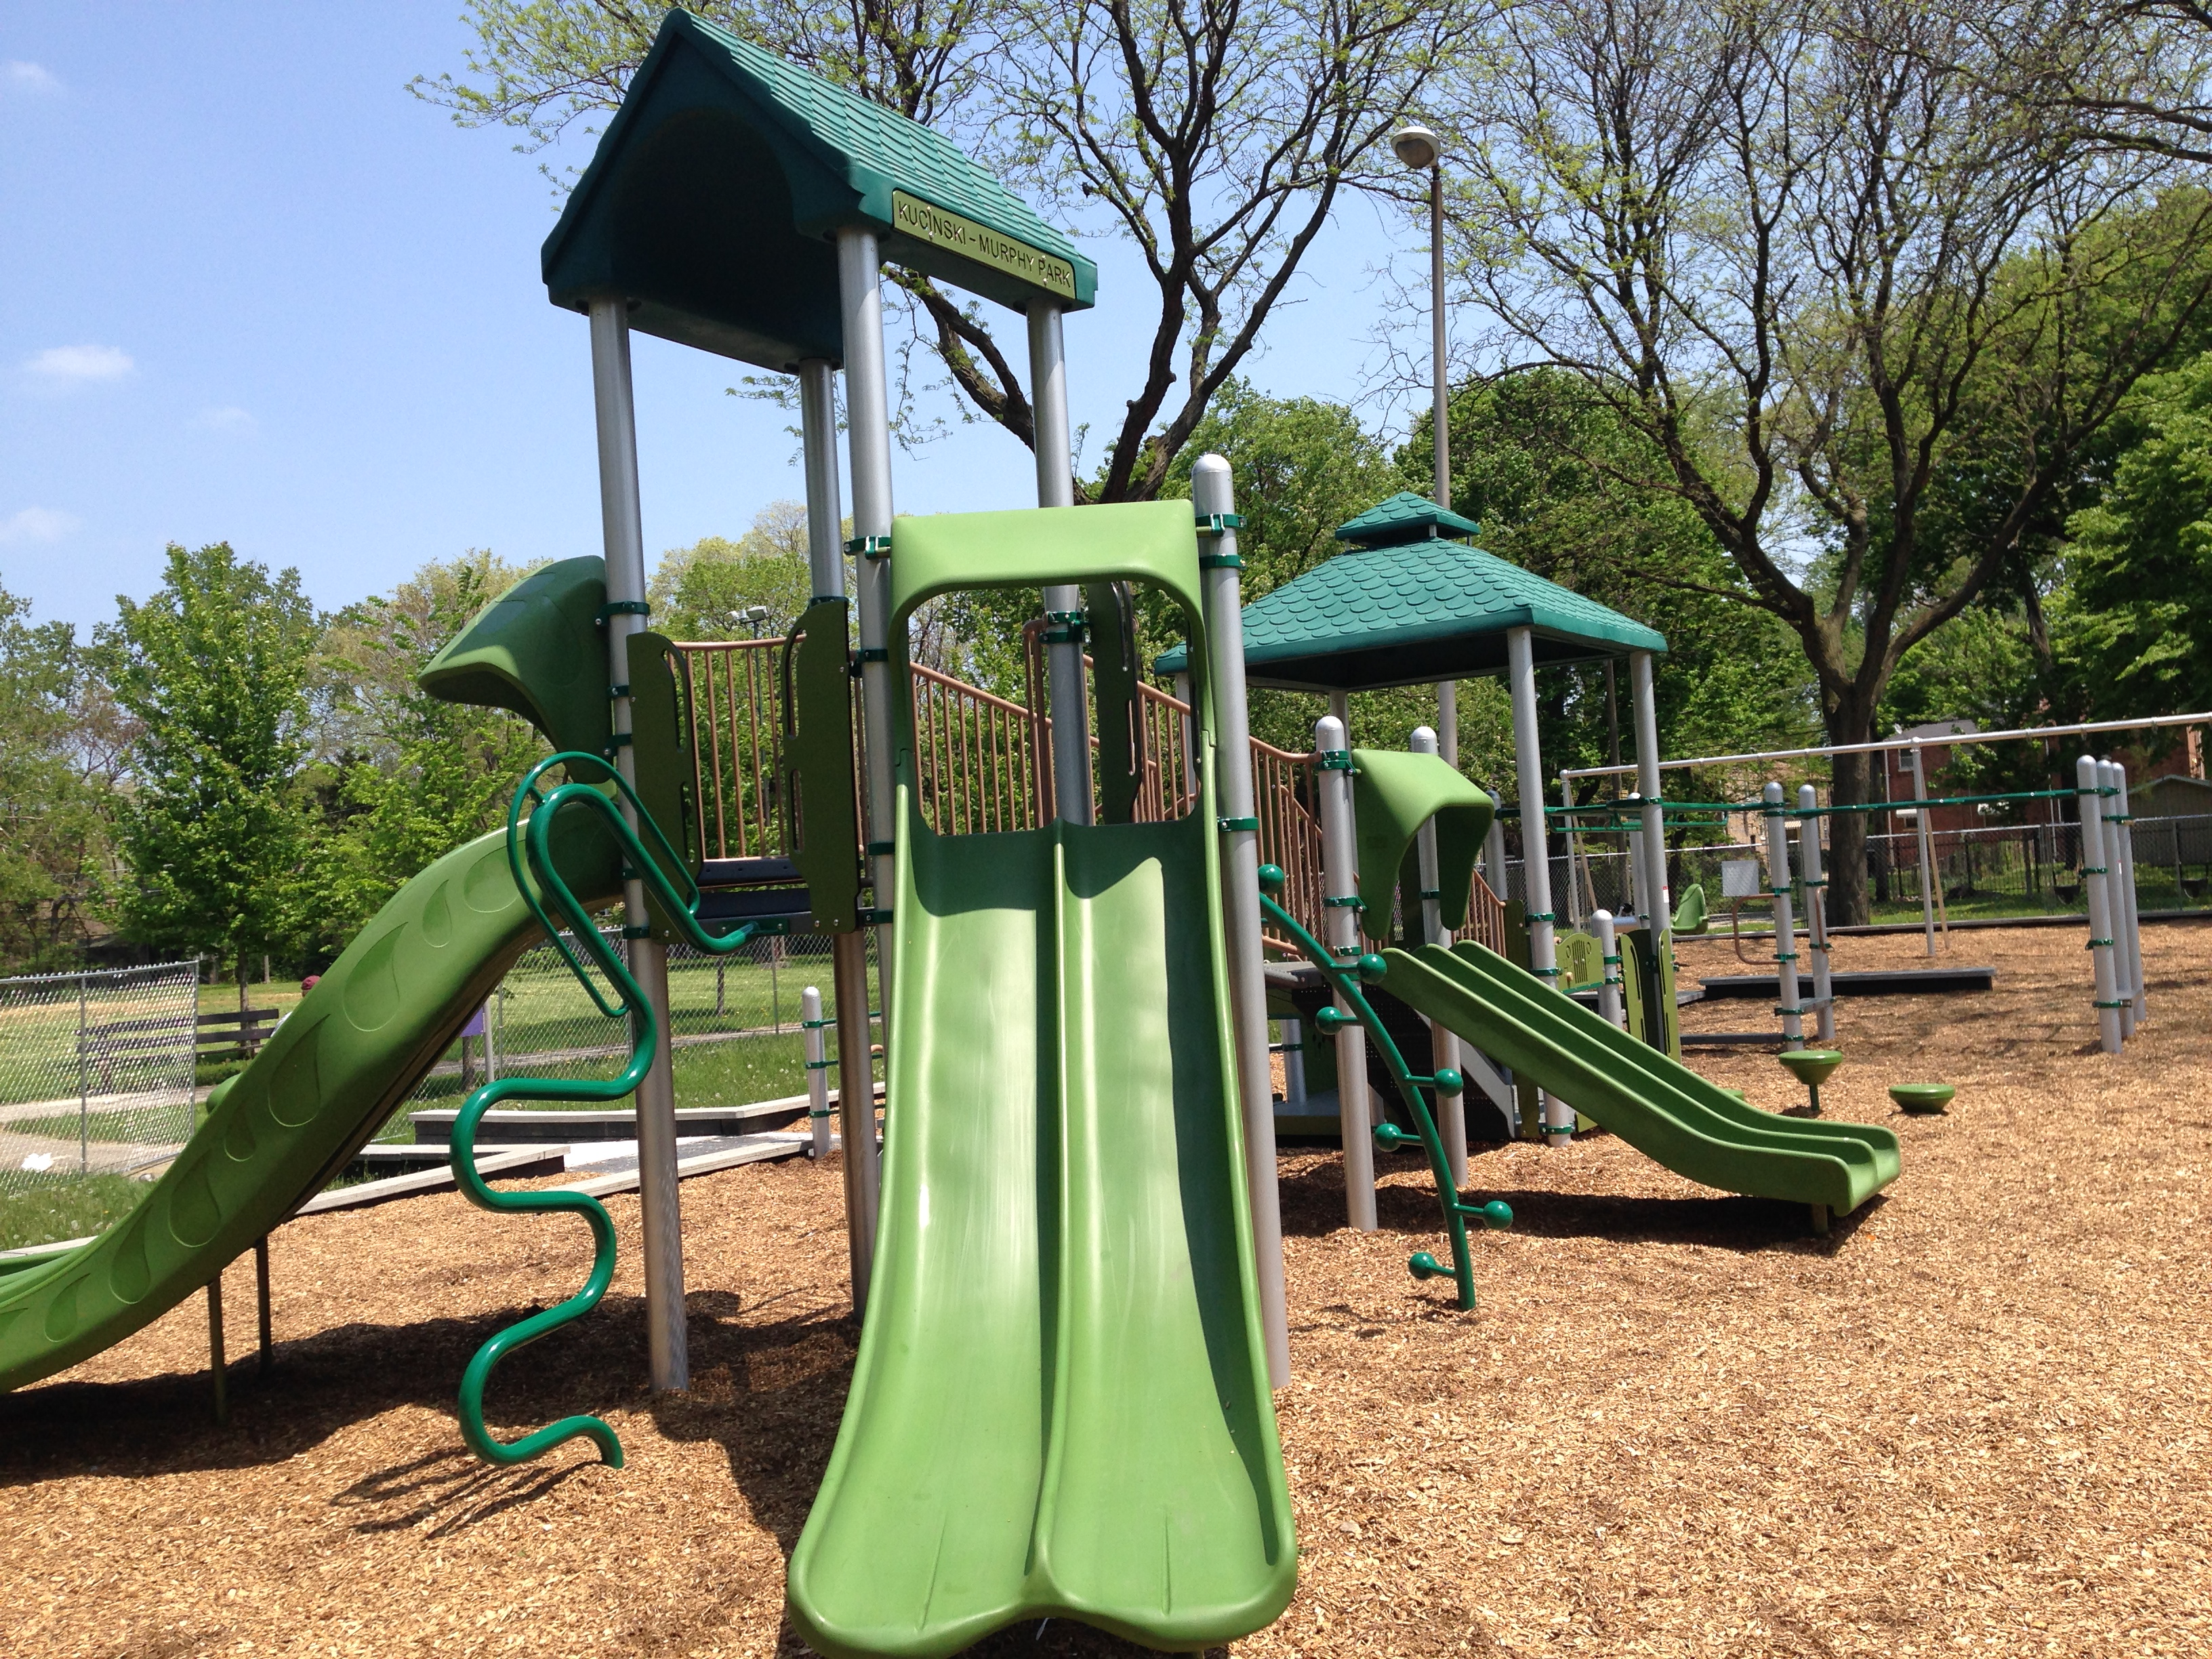 Chicago Plays! 2015 Complete the Application and Nominate your Playground!